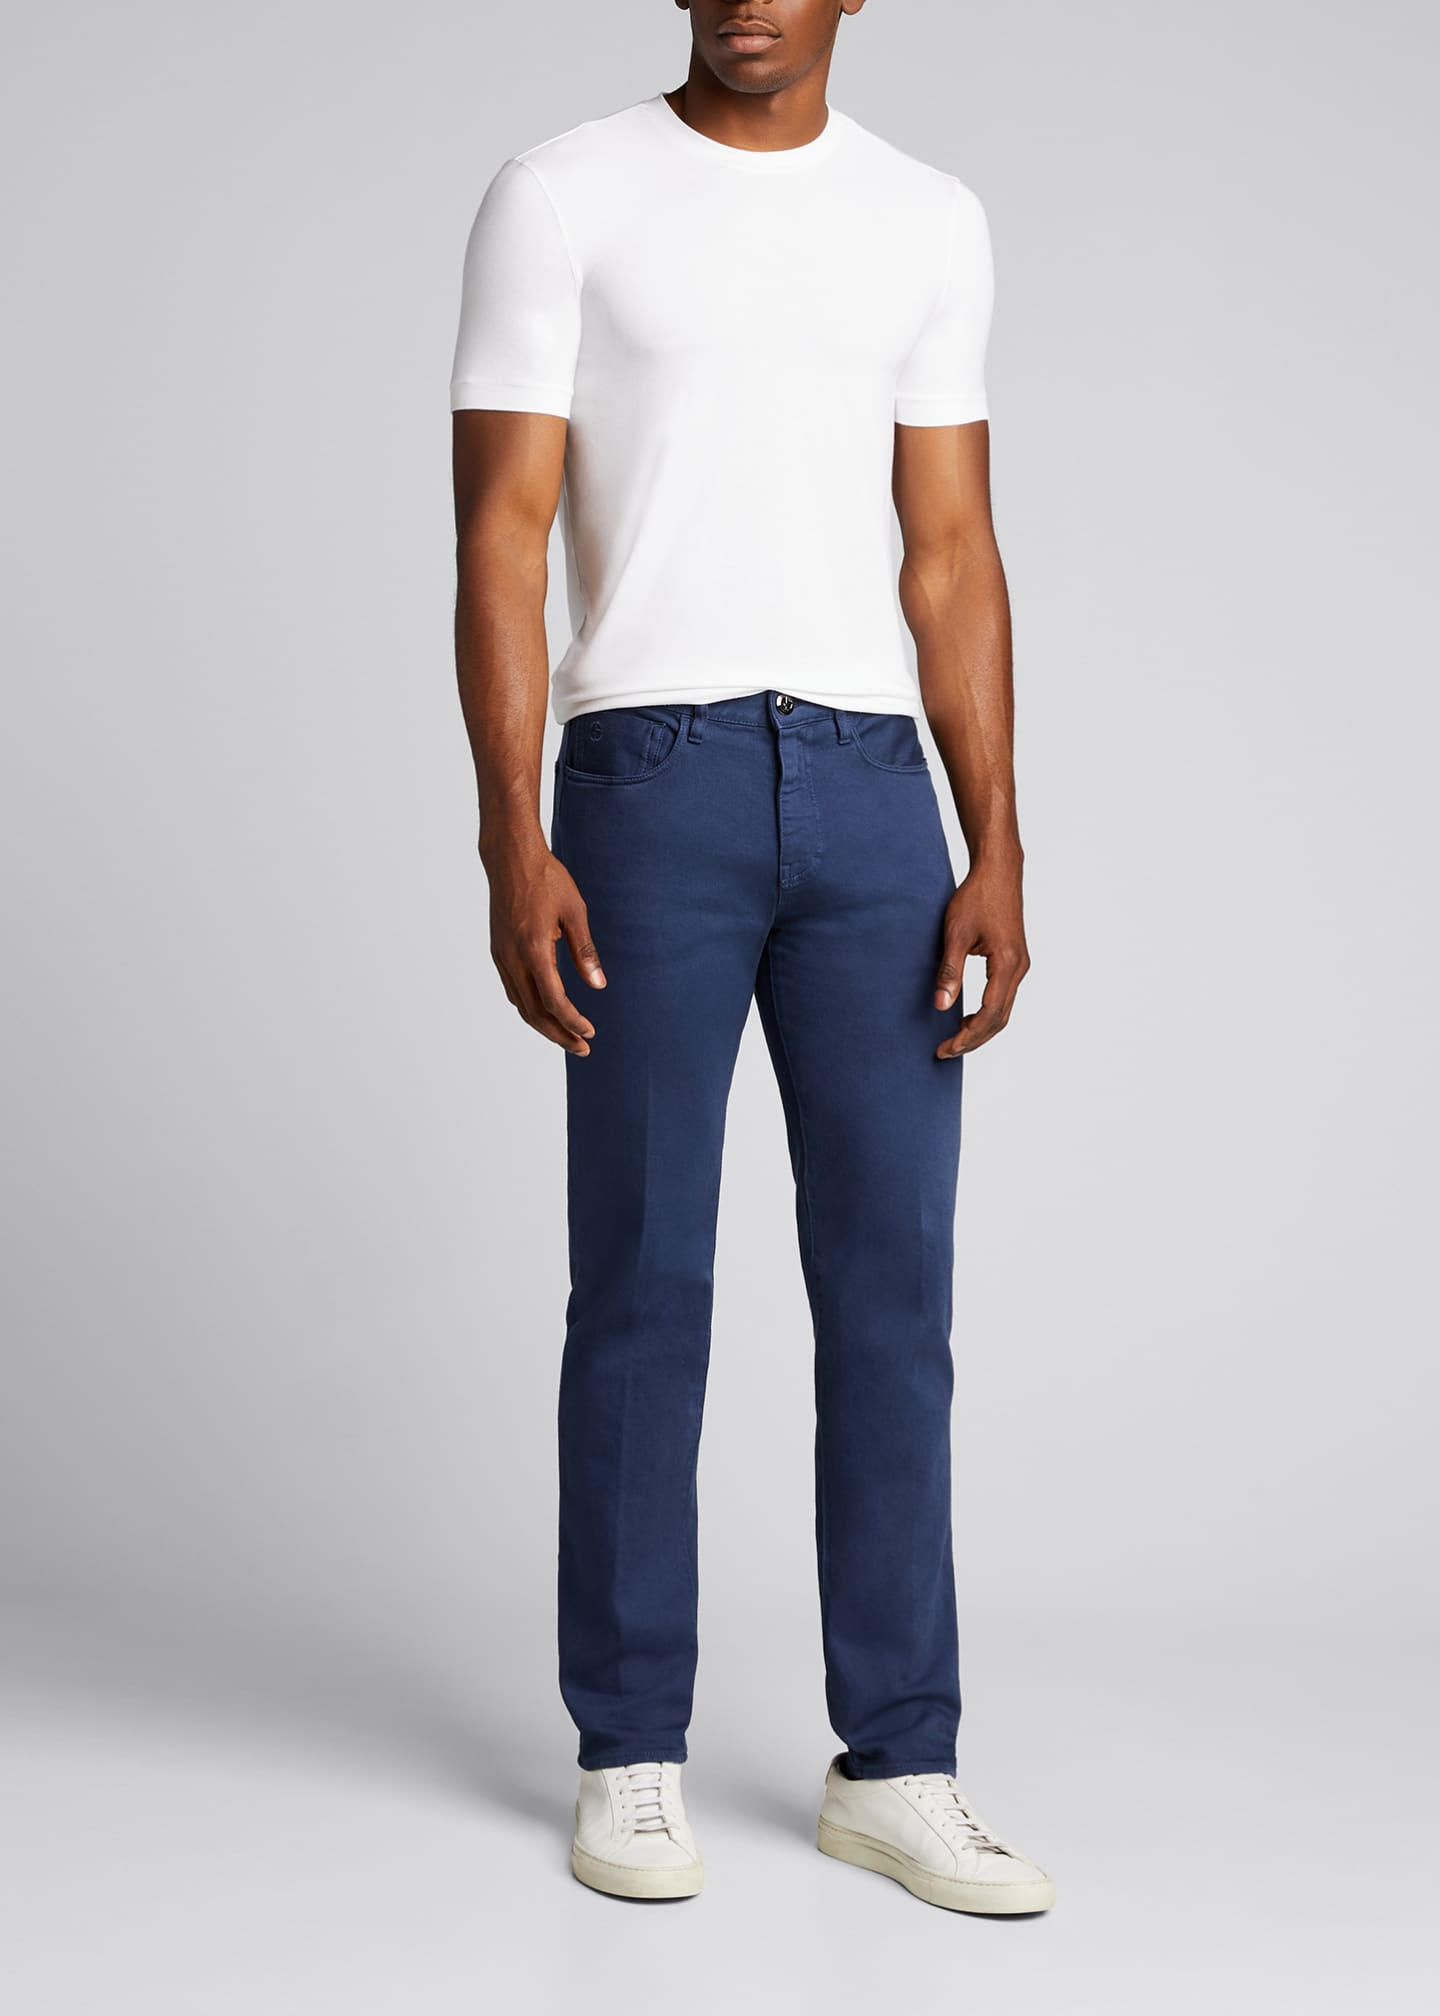 Image 1 of 5: Men's Relaxed Slim Five-Pocket Jeans